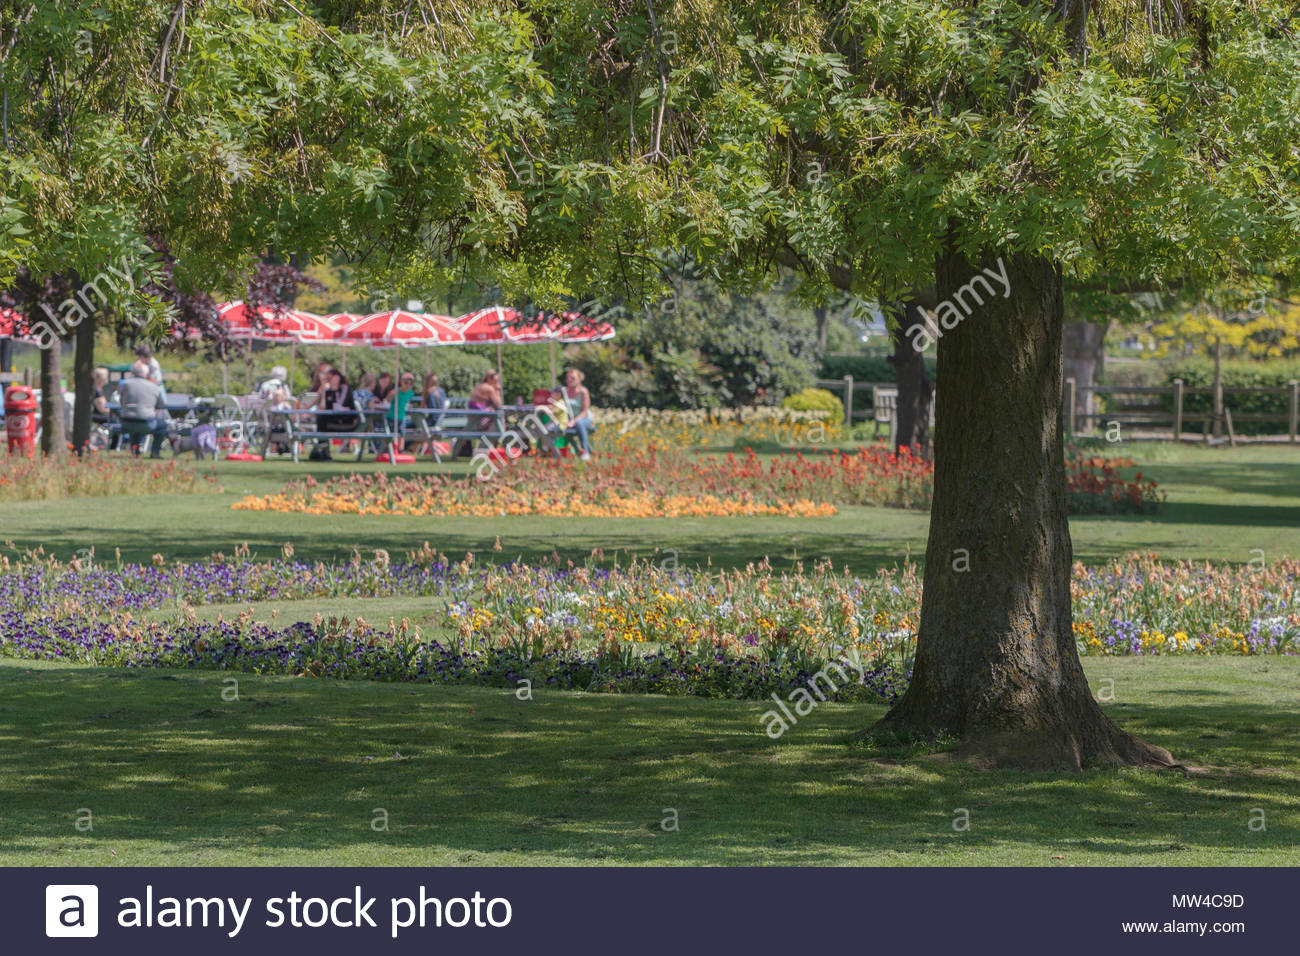 Southchurch Park in Essex UK on a sunny spring day. - Stock Image